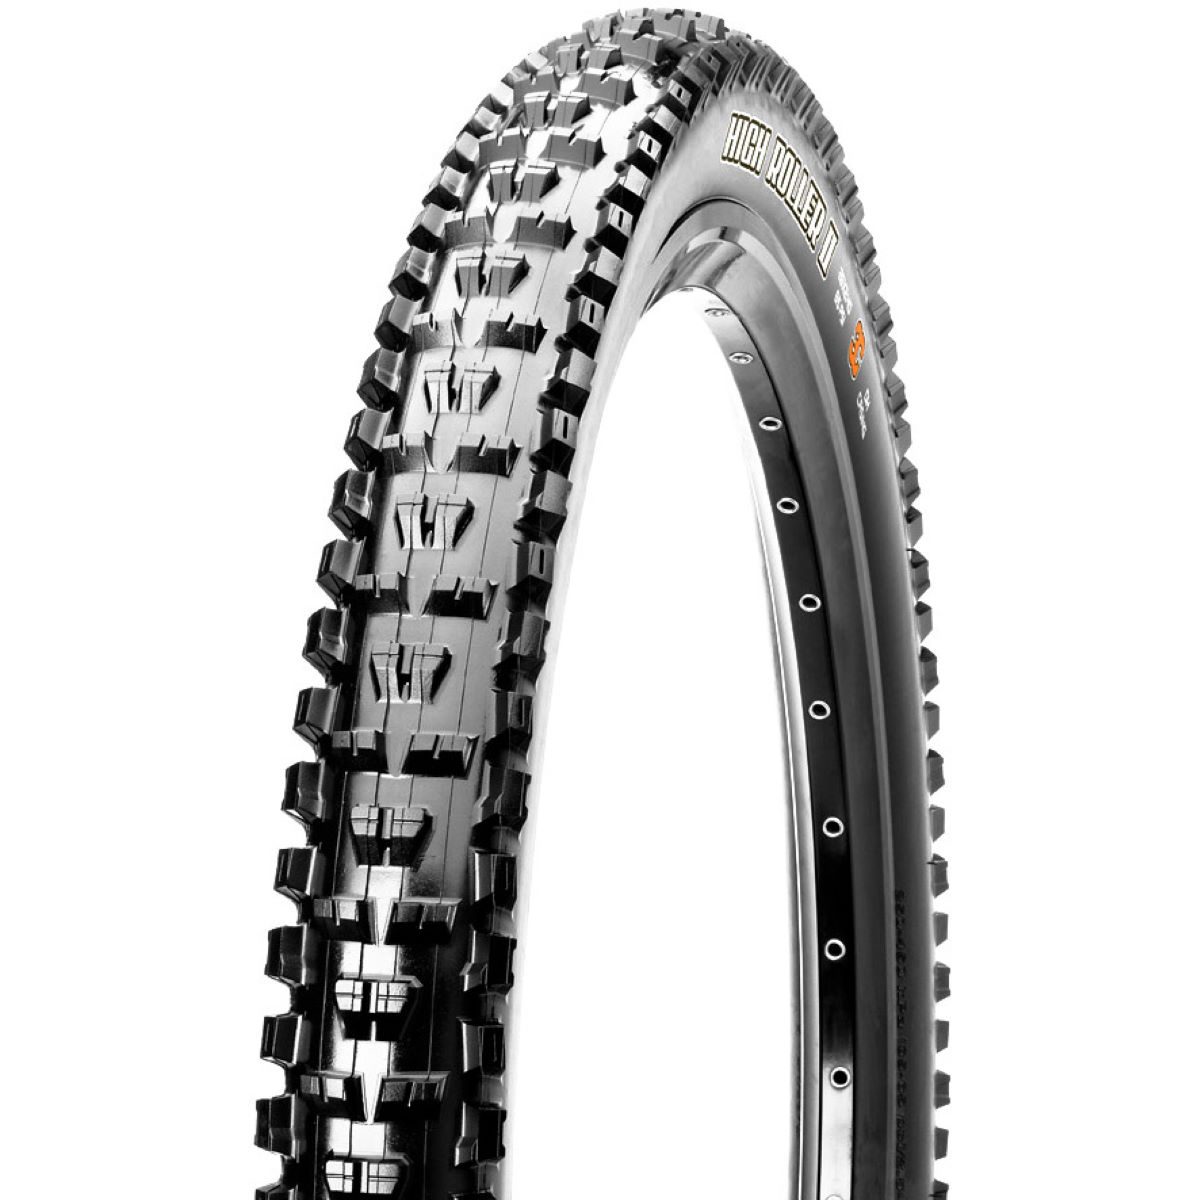 Pneu VTT Maxxis High Roller II Wired - 2.4' 26' Noir Pneus